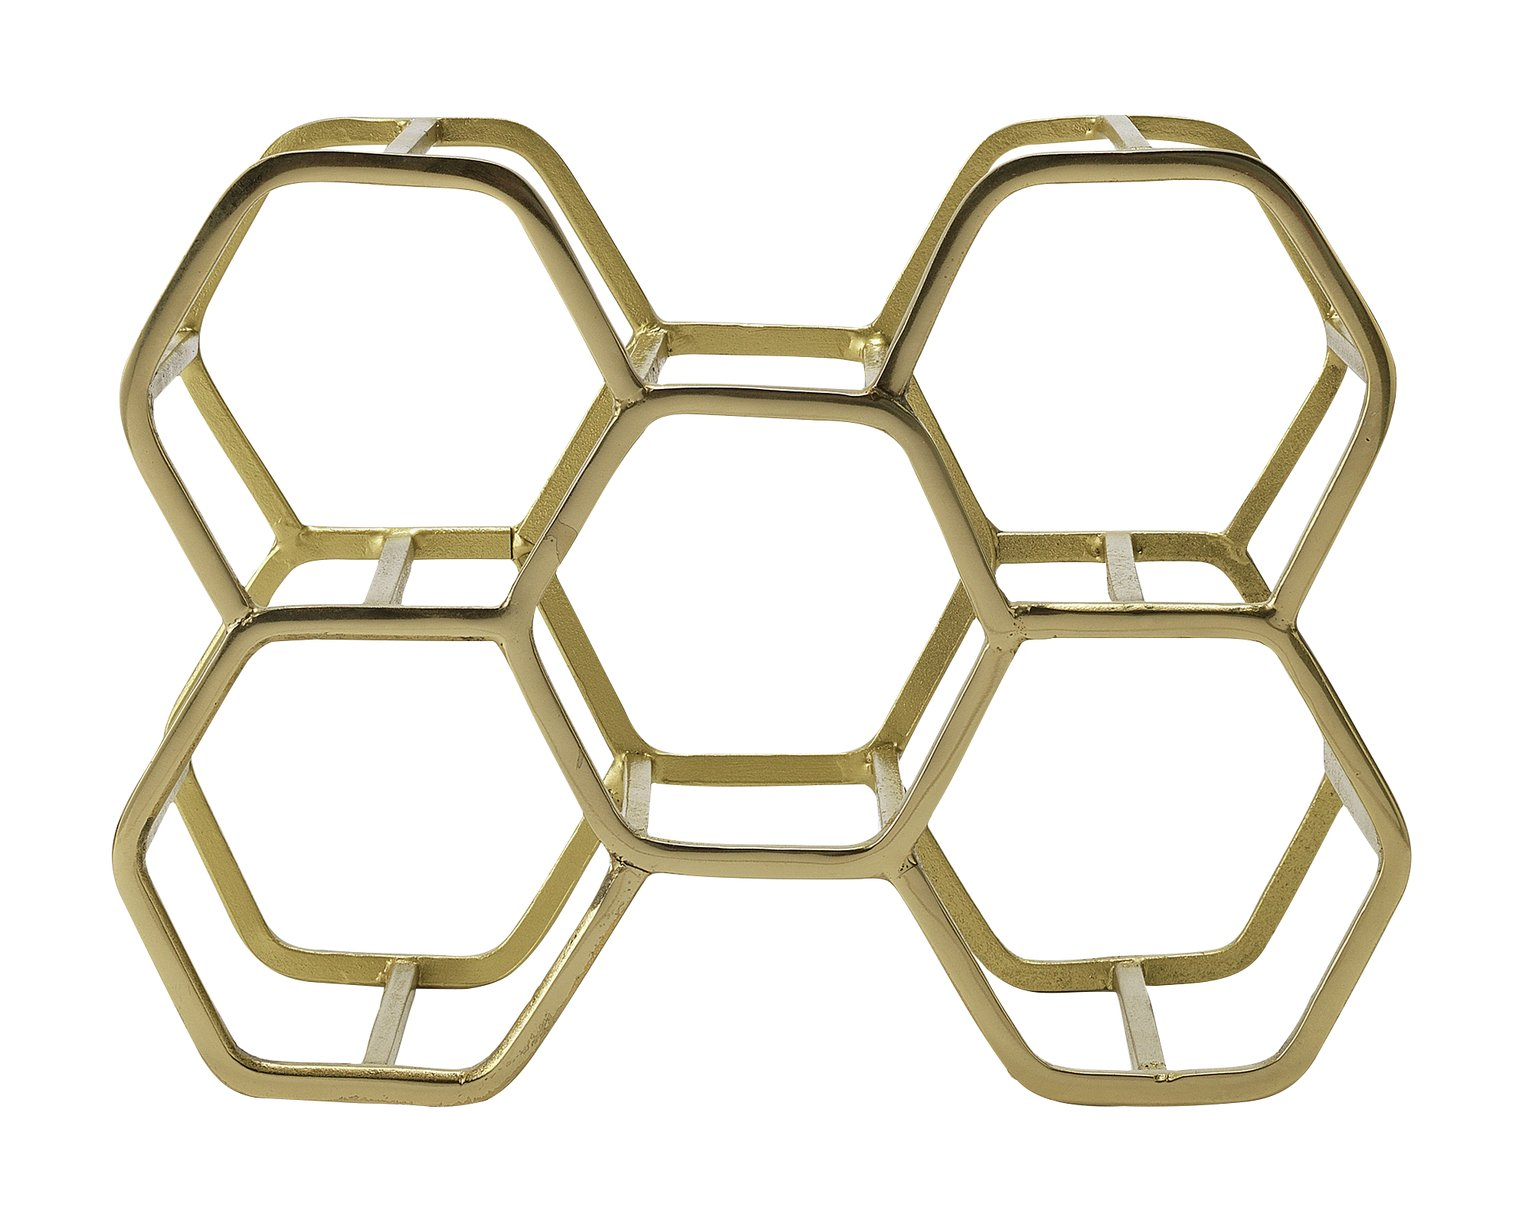 Argos Home Hexagonal 6 Bottle Wine Rack